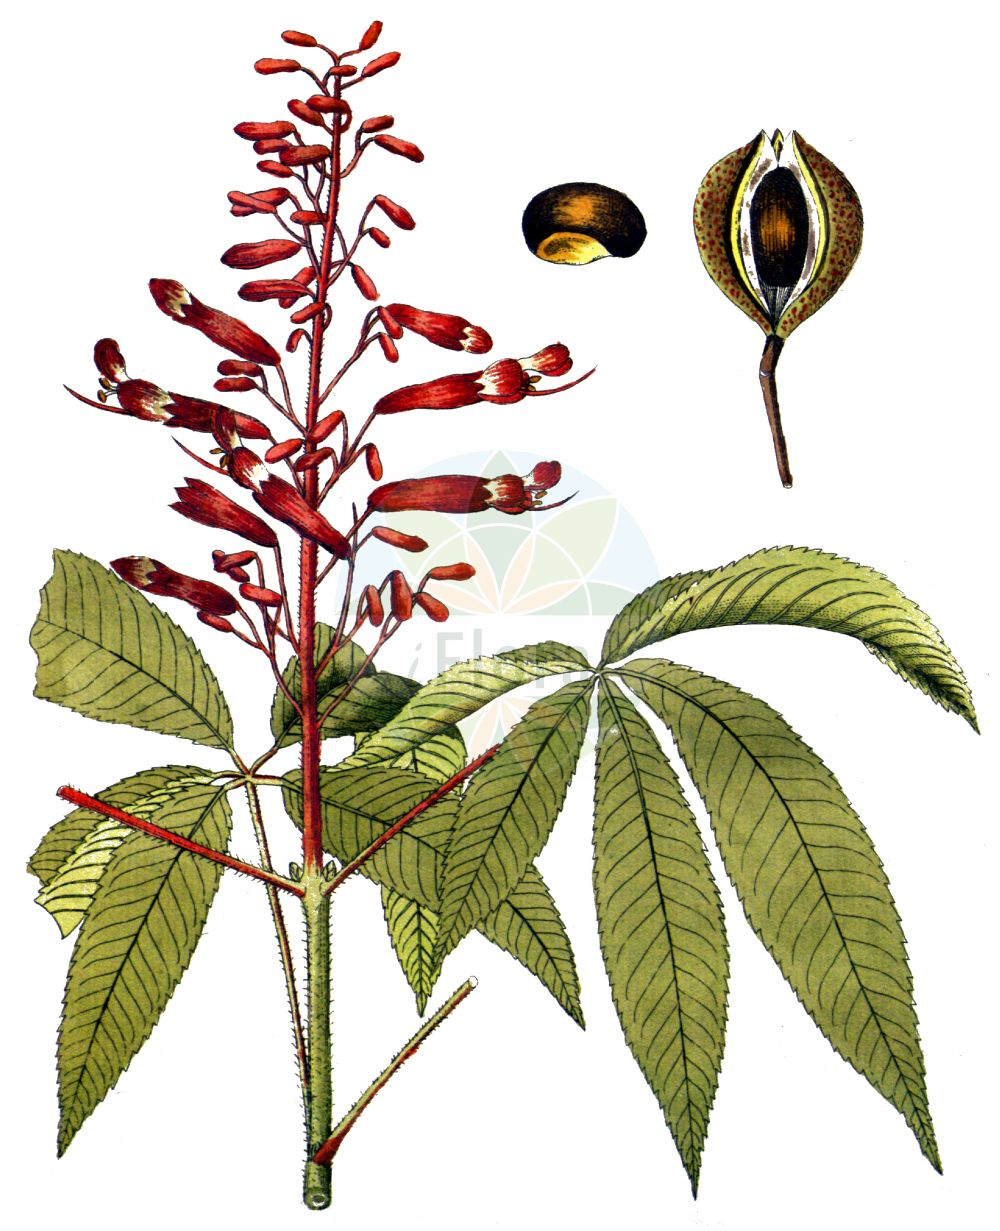 Historische Abbildung von Aesculus pavia. Das Bild zeigt Blatt, Bluete, Frucht und Same. ---- Historical Drawing of Aesculus pavia.The image is showing leaf, flower, fruit and seed.(Aesculus pavia,Aesculus pavia,Aesculus,Rosskastanie,Horse-chestnut,Sapindaceae,Seifenbaumgewaechse,Soapberry family,Blatt,Bluete,Frucht,Same,leaf,flower,fruit,seed,Vietz (1800-1822))